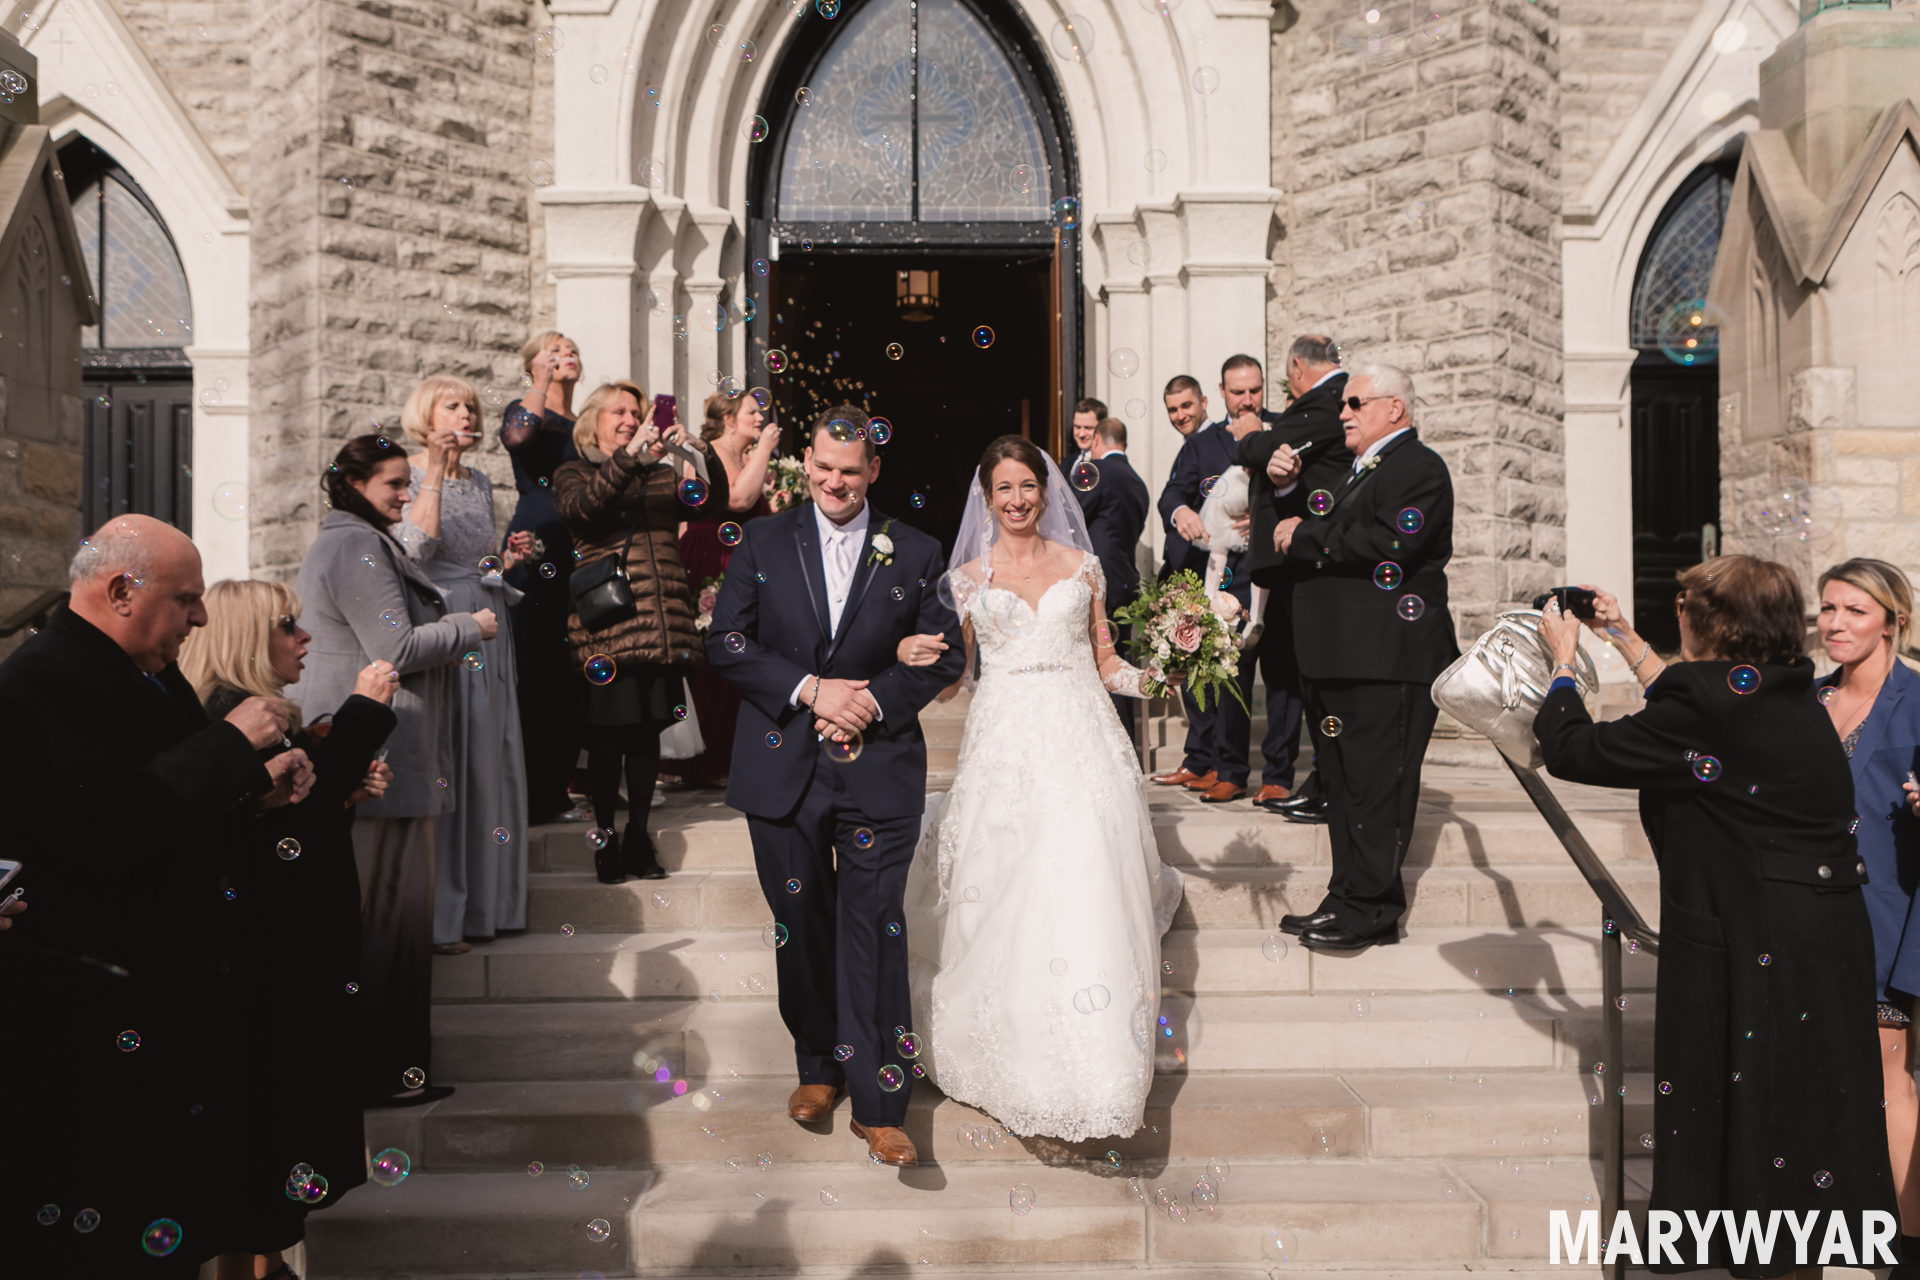 St. Rose Perrysburg Wedding Photos